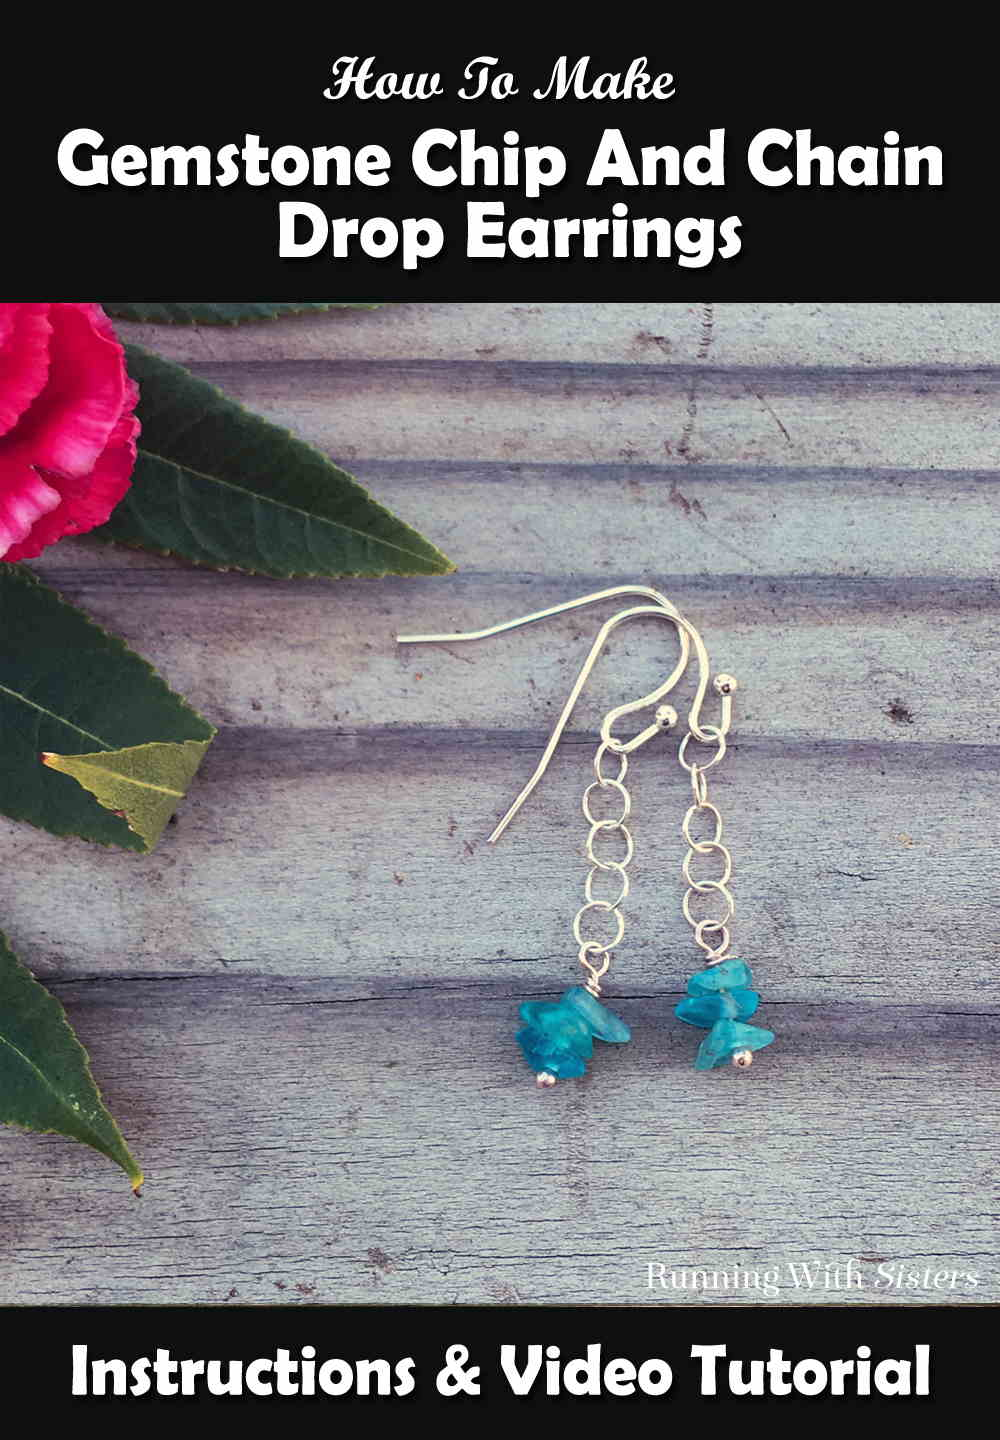 Gemstone Chip And Chain Drop Earrings Pinterest